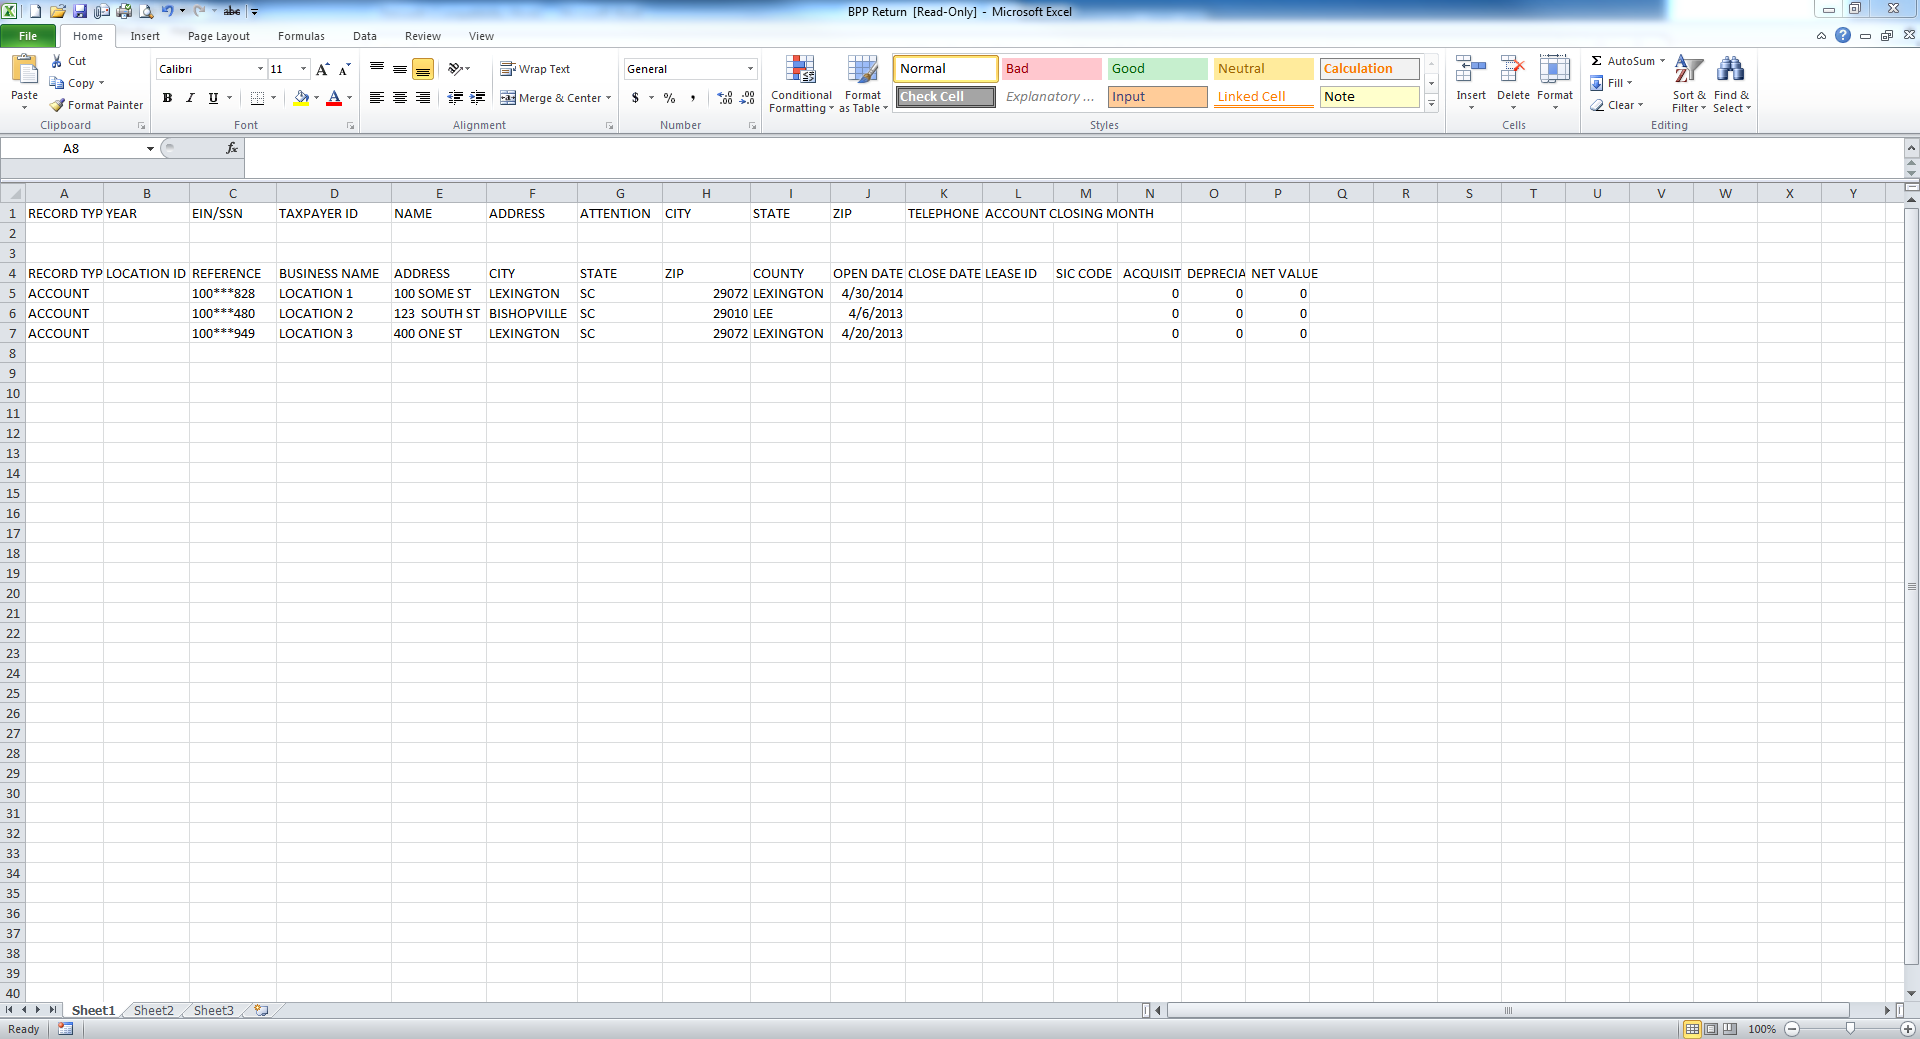 Excel File Of All Sic Codes By Industry